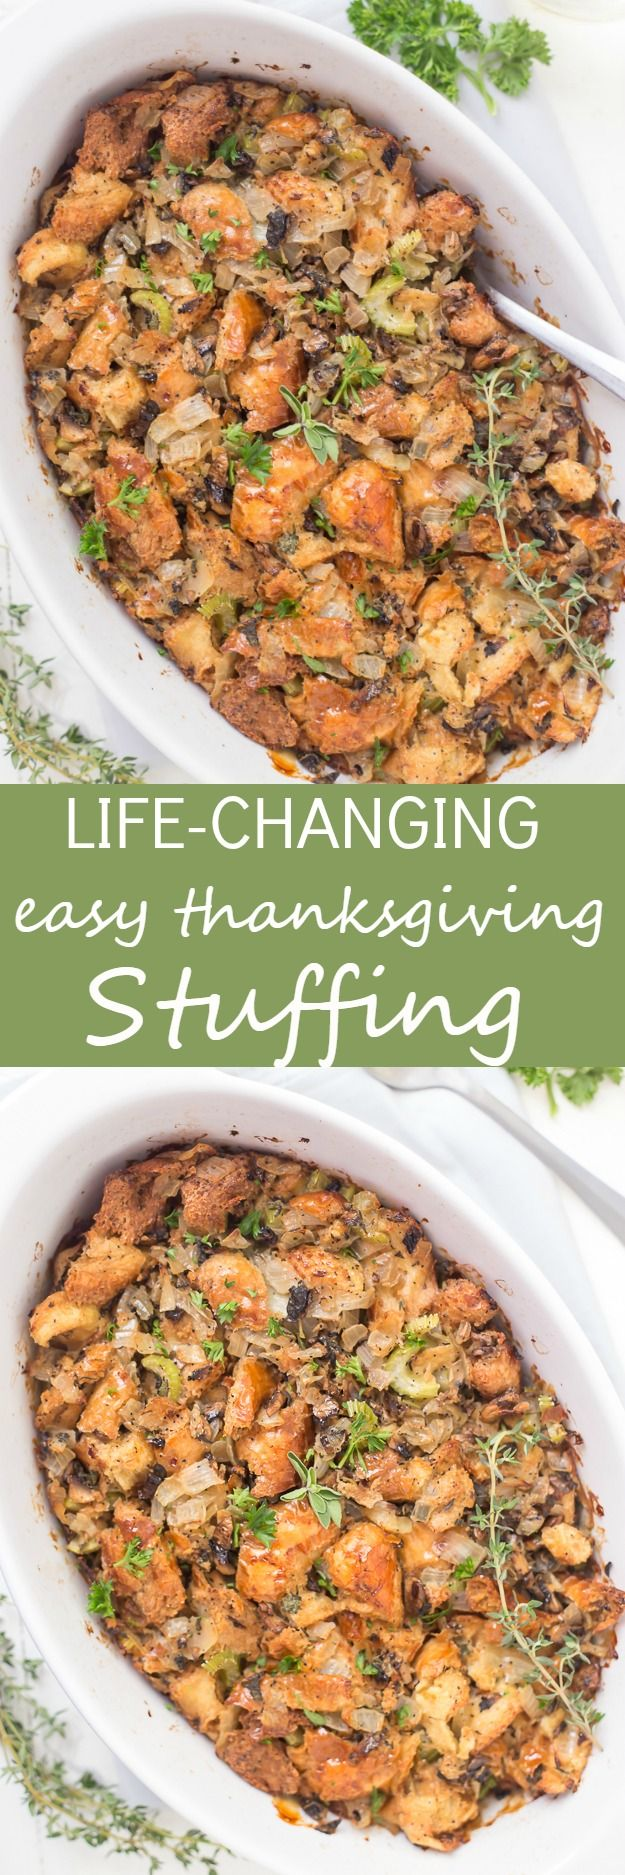 This Life-Changing Easy Thanksgiving Stuffing is my go-to stuffing recipe! Homemade stuffing is the best when made with fresh herbs, torn-apart bread, and mushrooms! A must-have this holiday! via @galmission